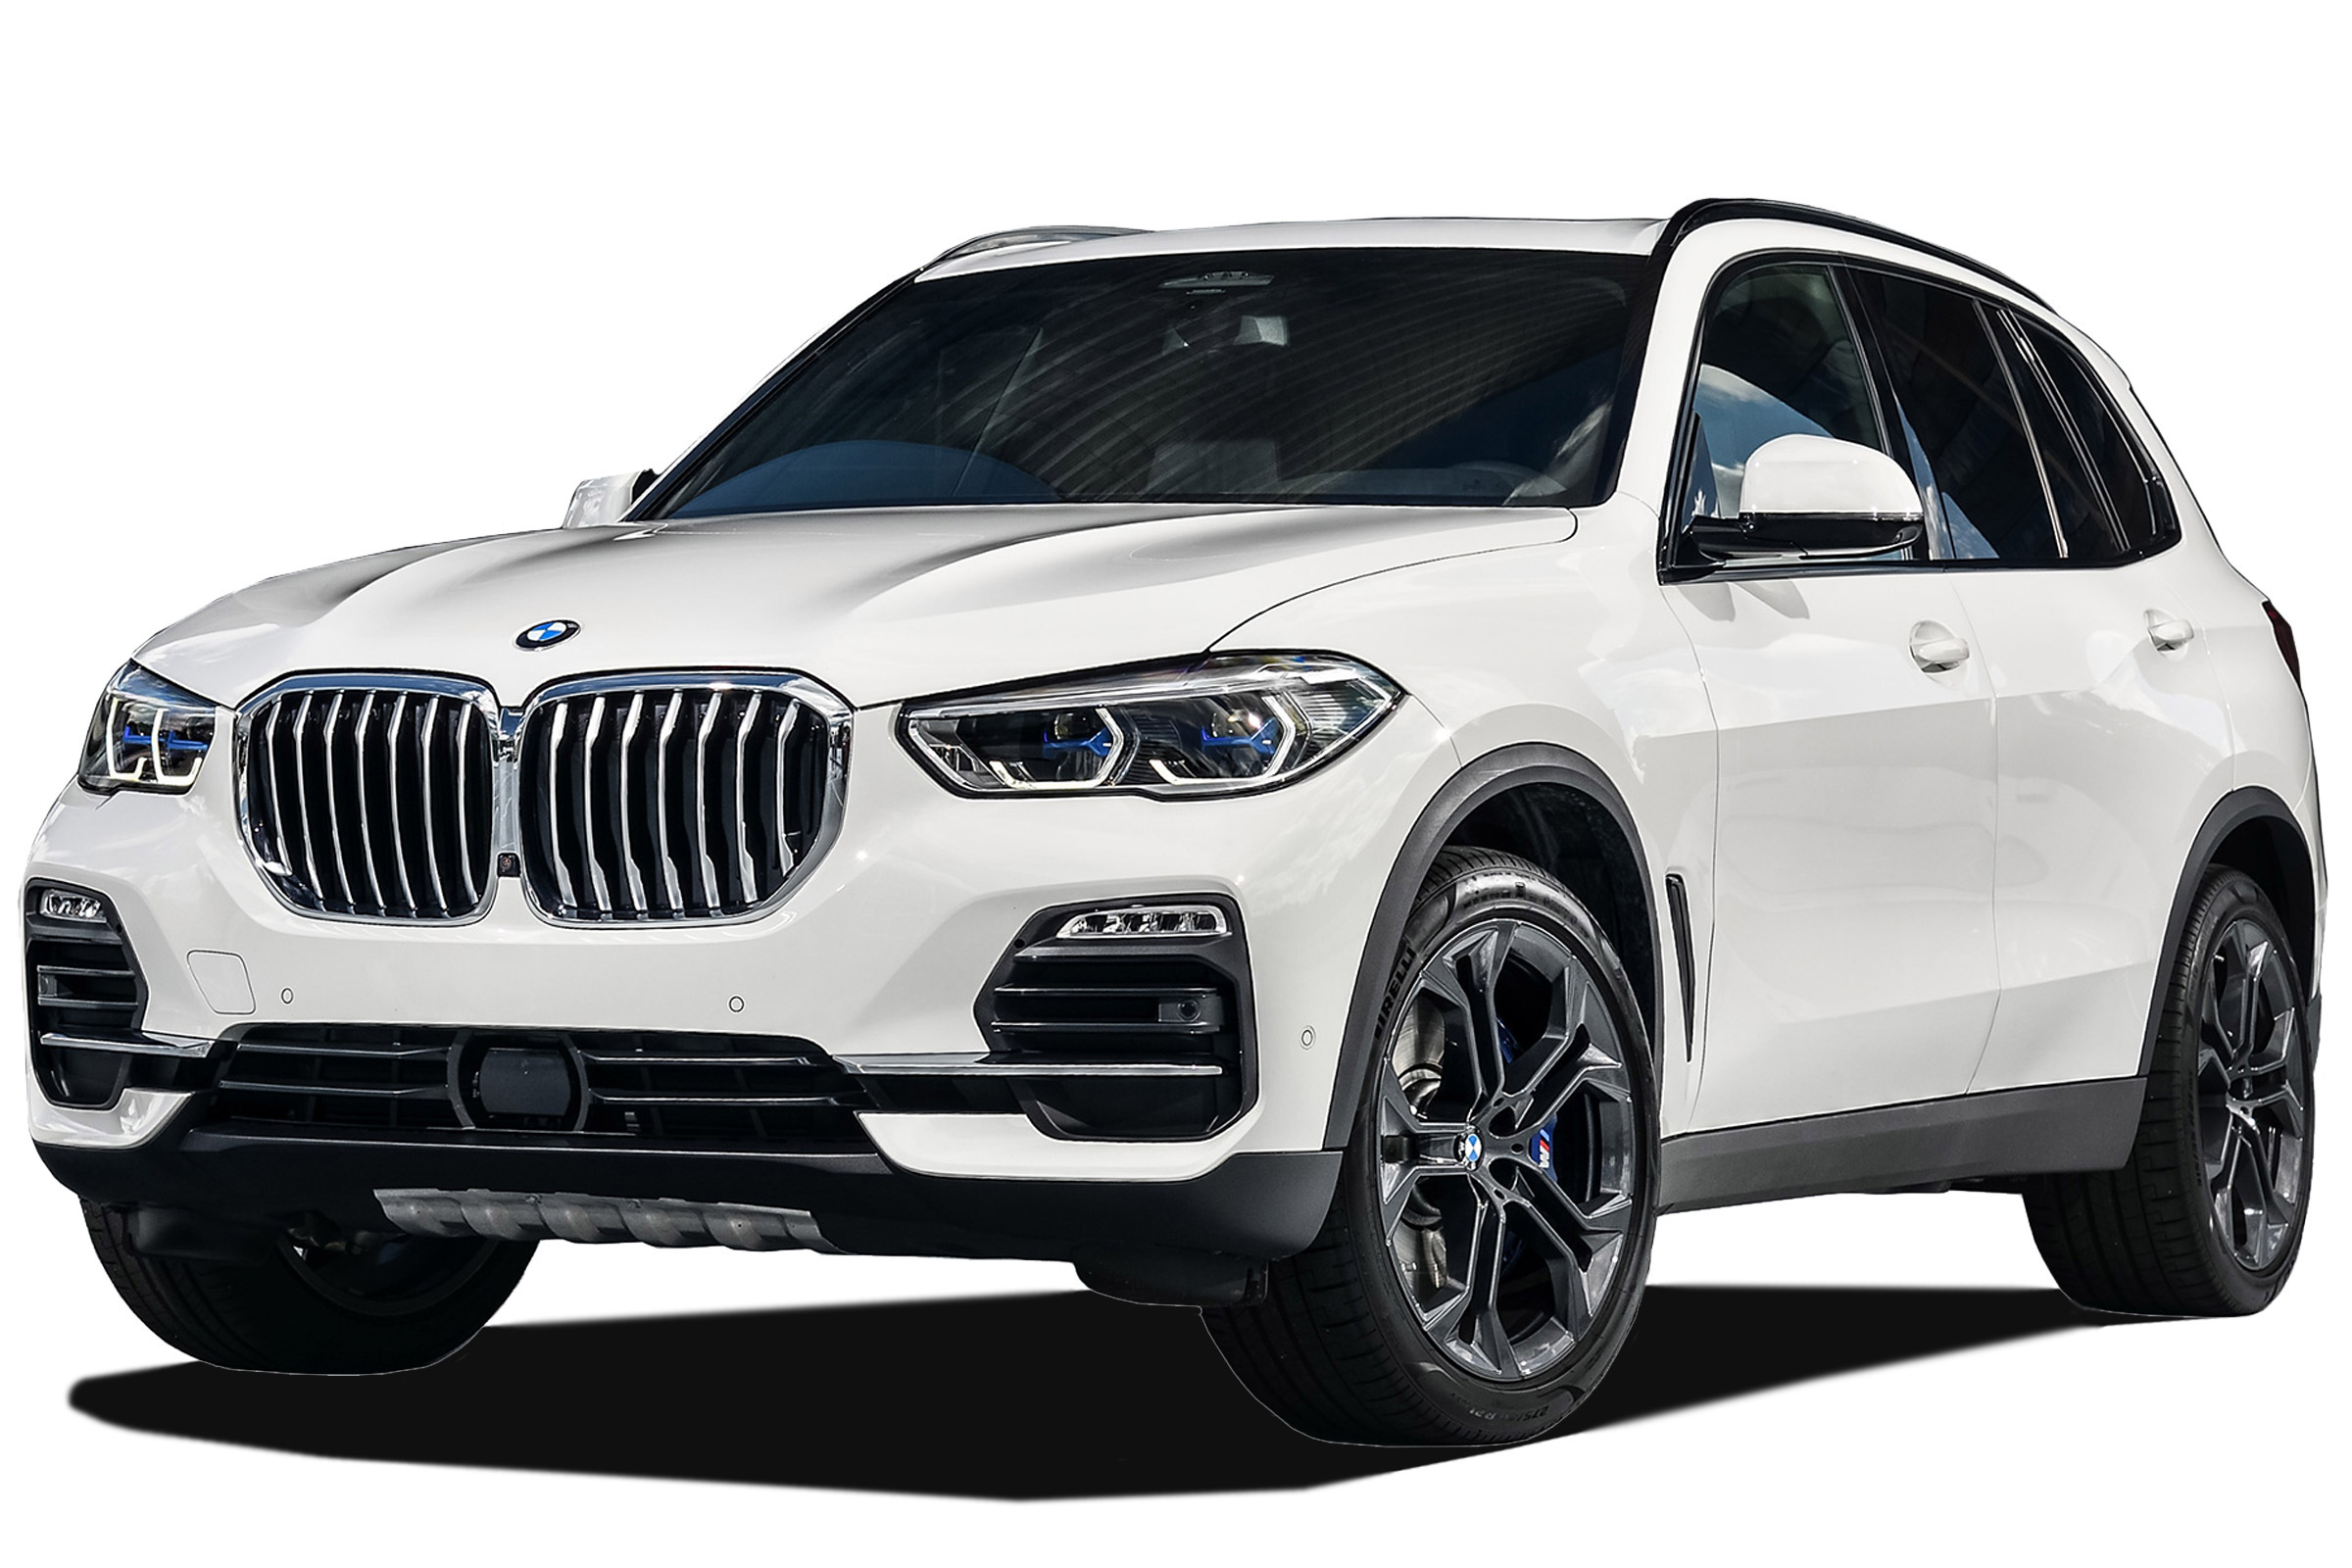 Bmw X5 Suv Engines Drive Performance 2020 Review Carbuyer